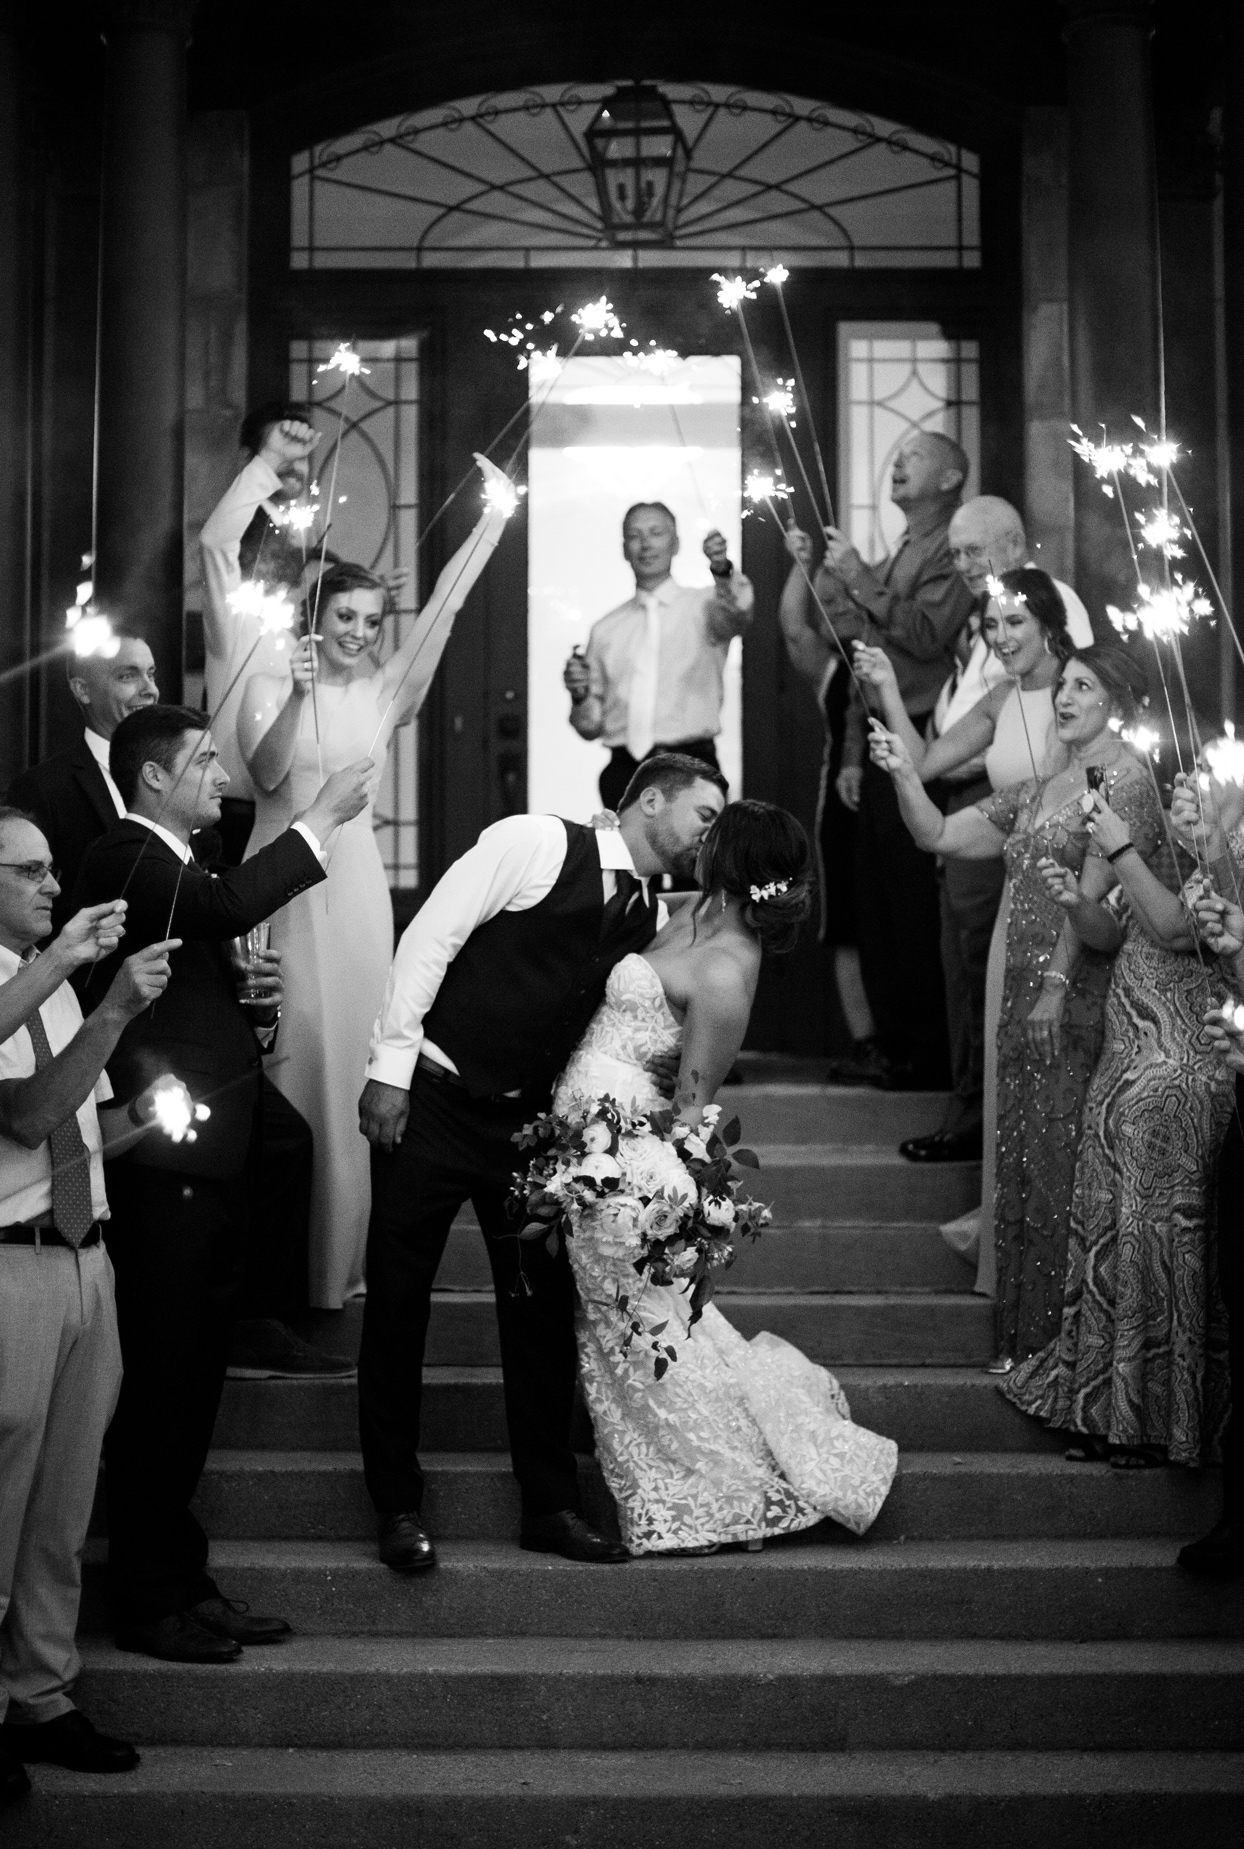 bride and groom kiss on stairway under sparklers held by guests